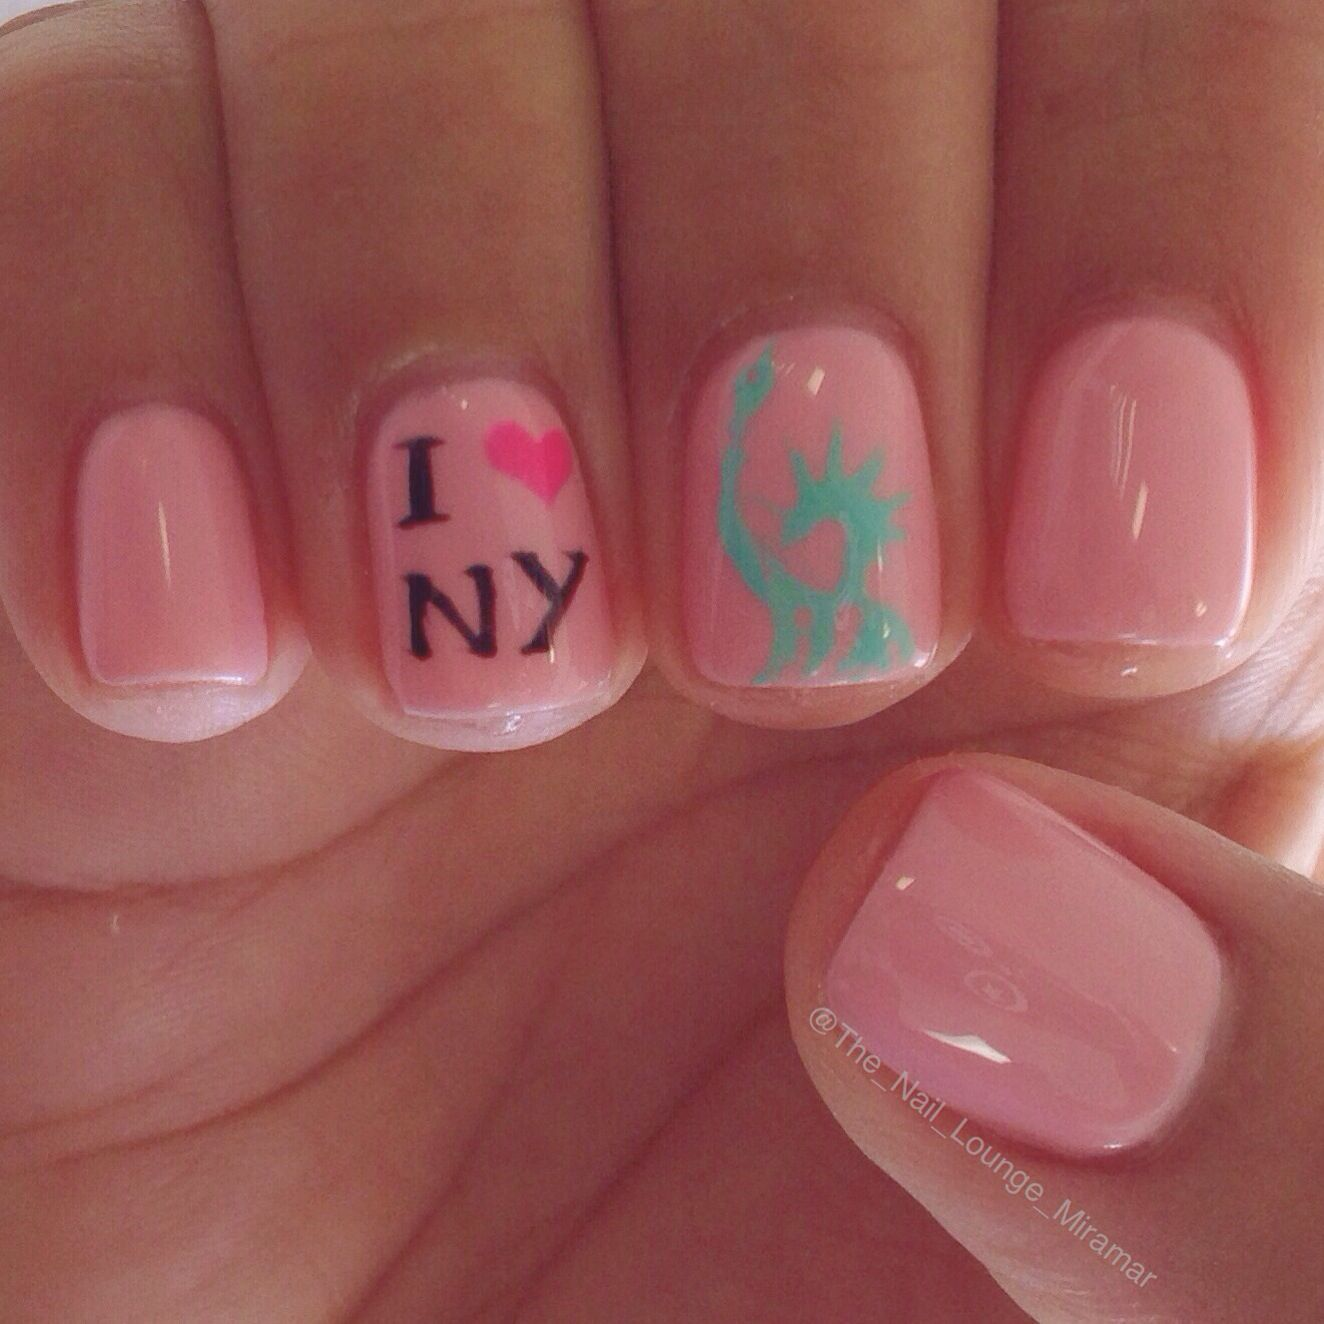 New York Statue of Liberty nail art design | Nail Art | Pinterest ...